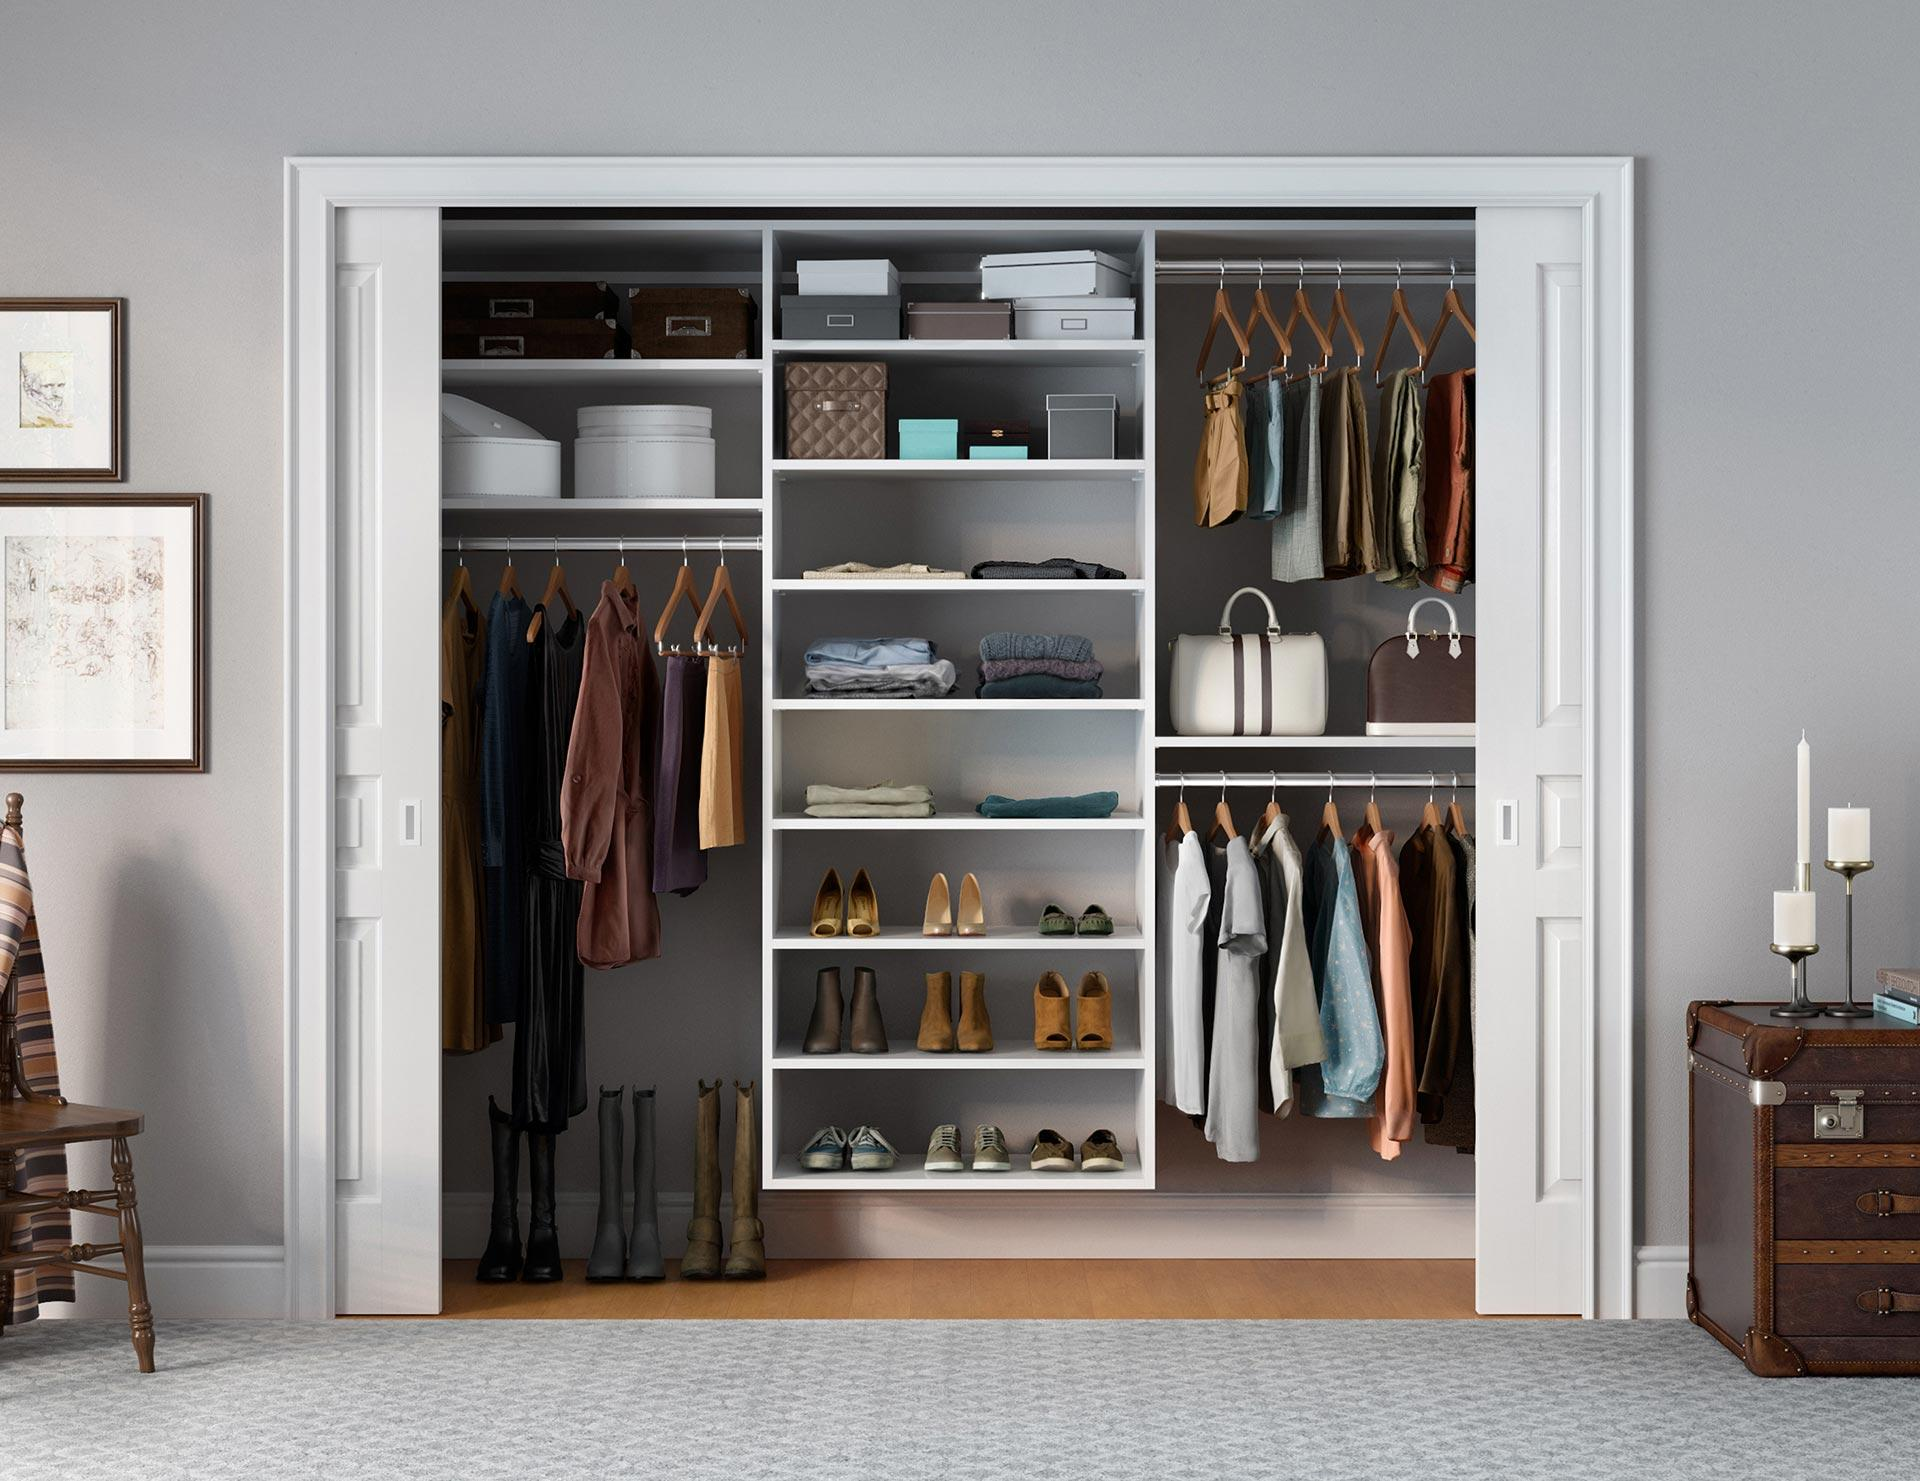 Reach-In Closets - Designs & Ideas by California Closets